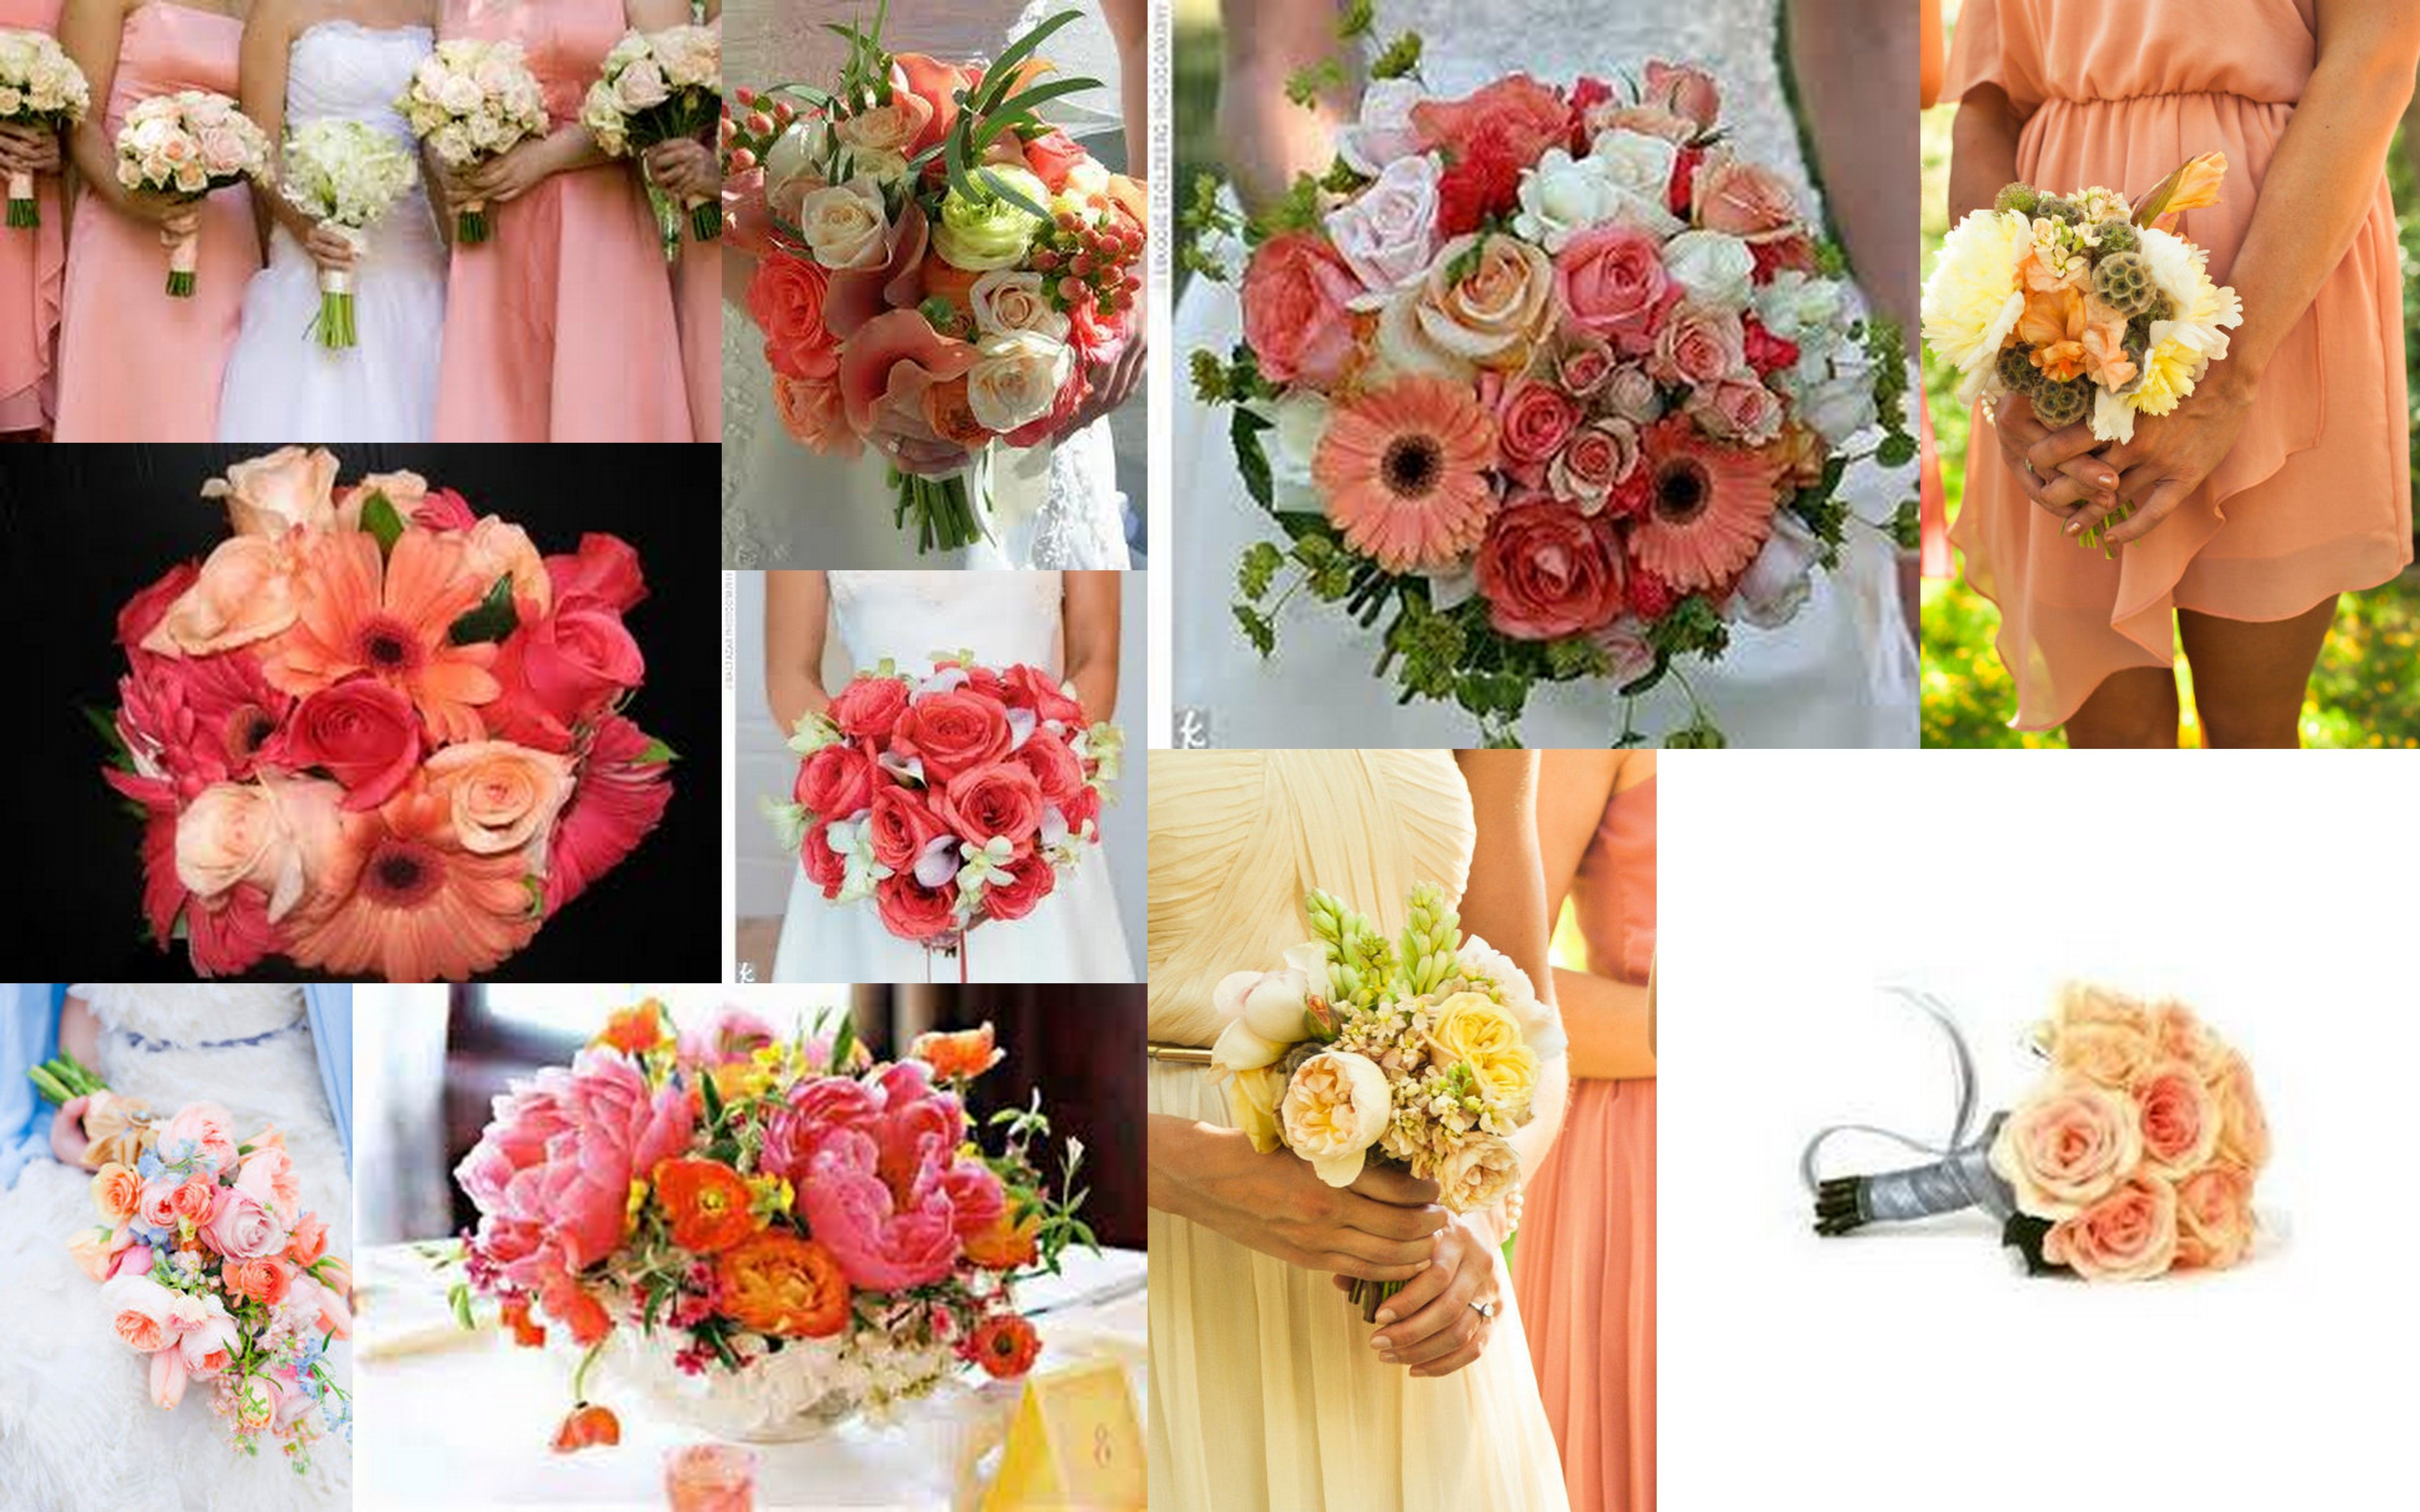 Beautiful flowers would love to add some teal to the